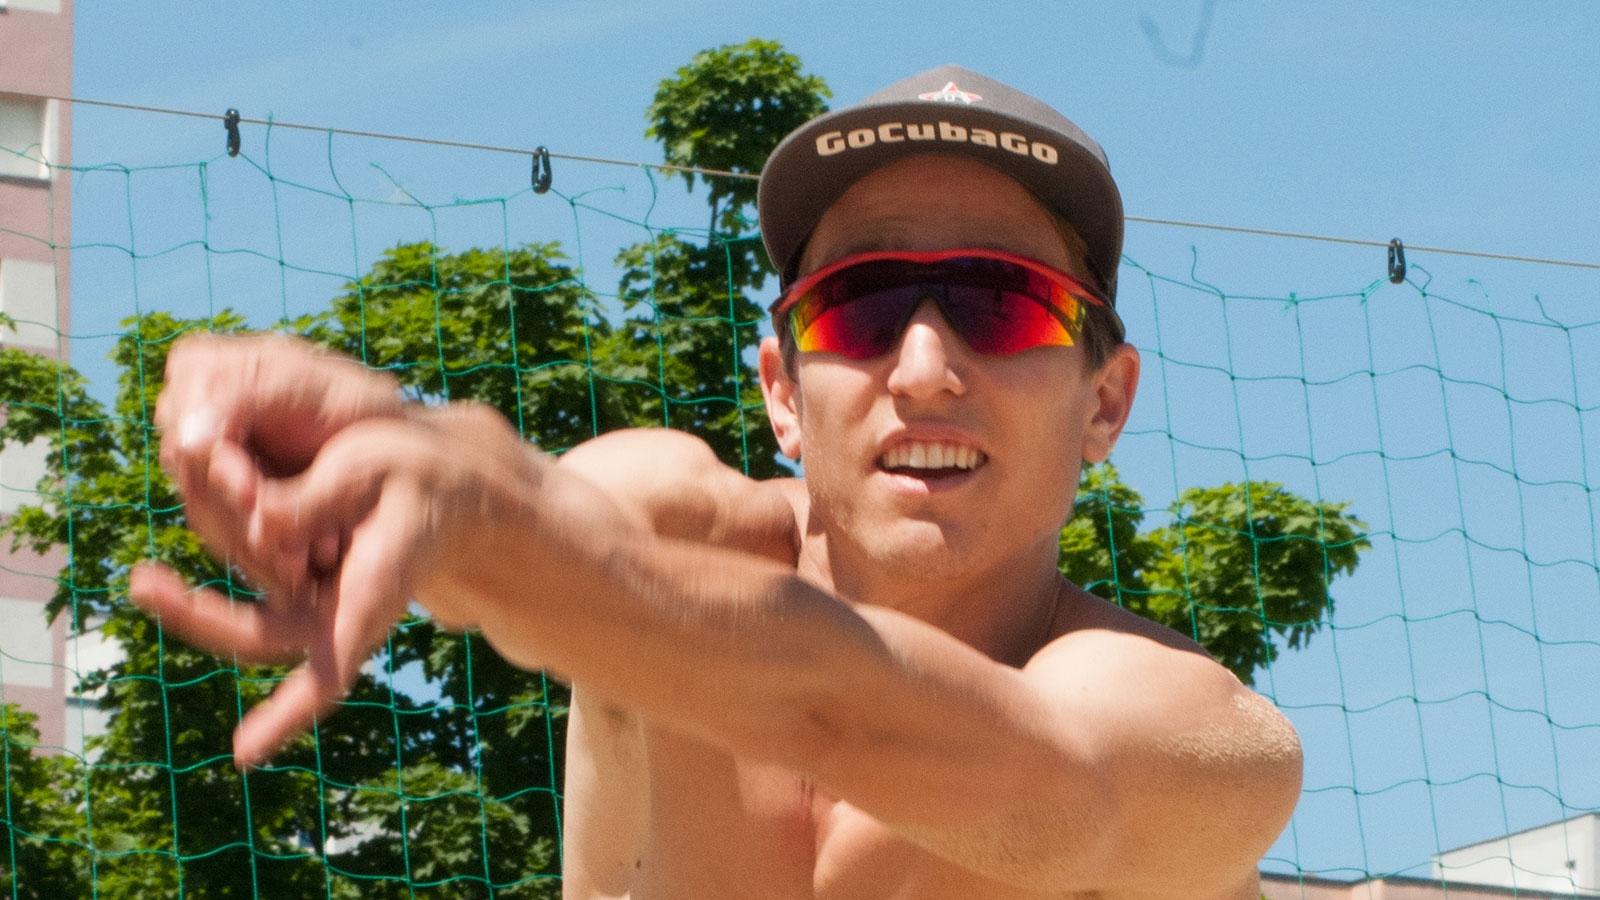 Sponsoring Go Cuba Go - Beachvolleyball-Team Winter-Hörl | 2019 (Julian Hörl, CloseUp) © Team Winter Hörl